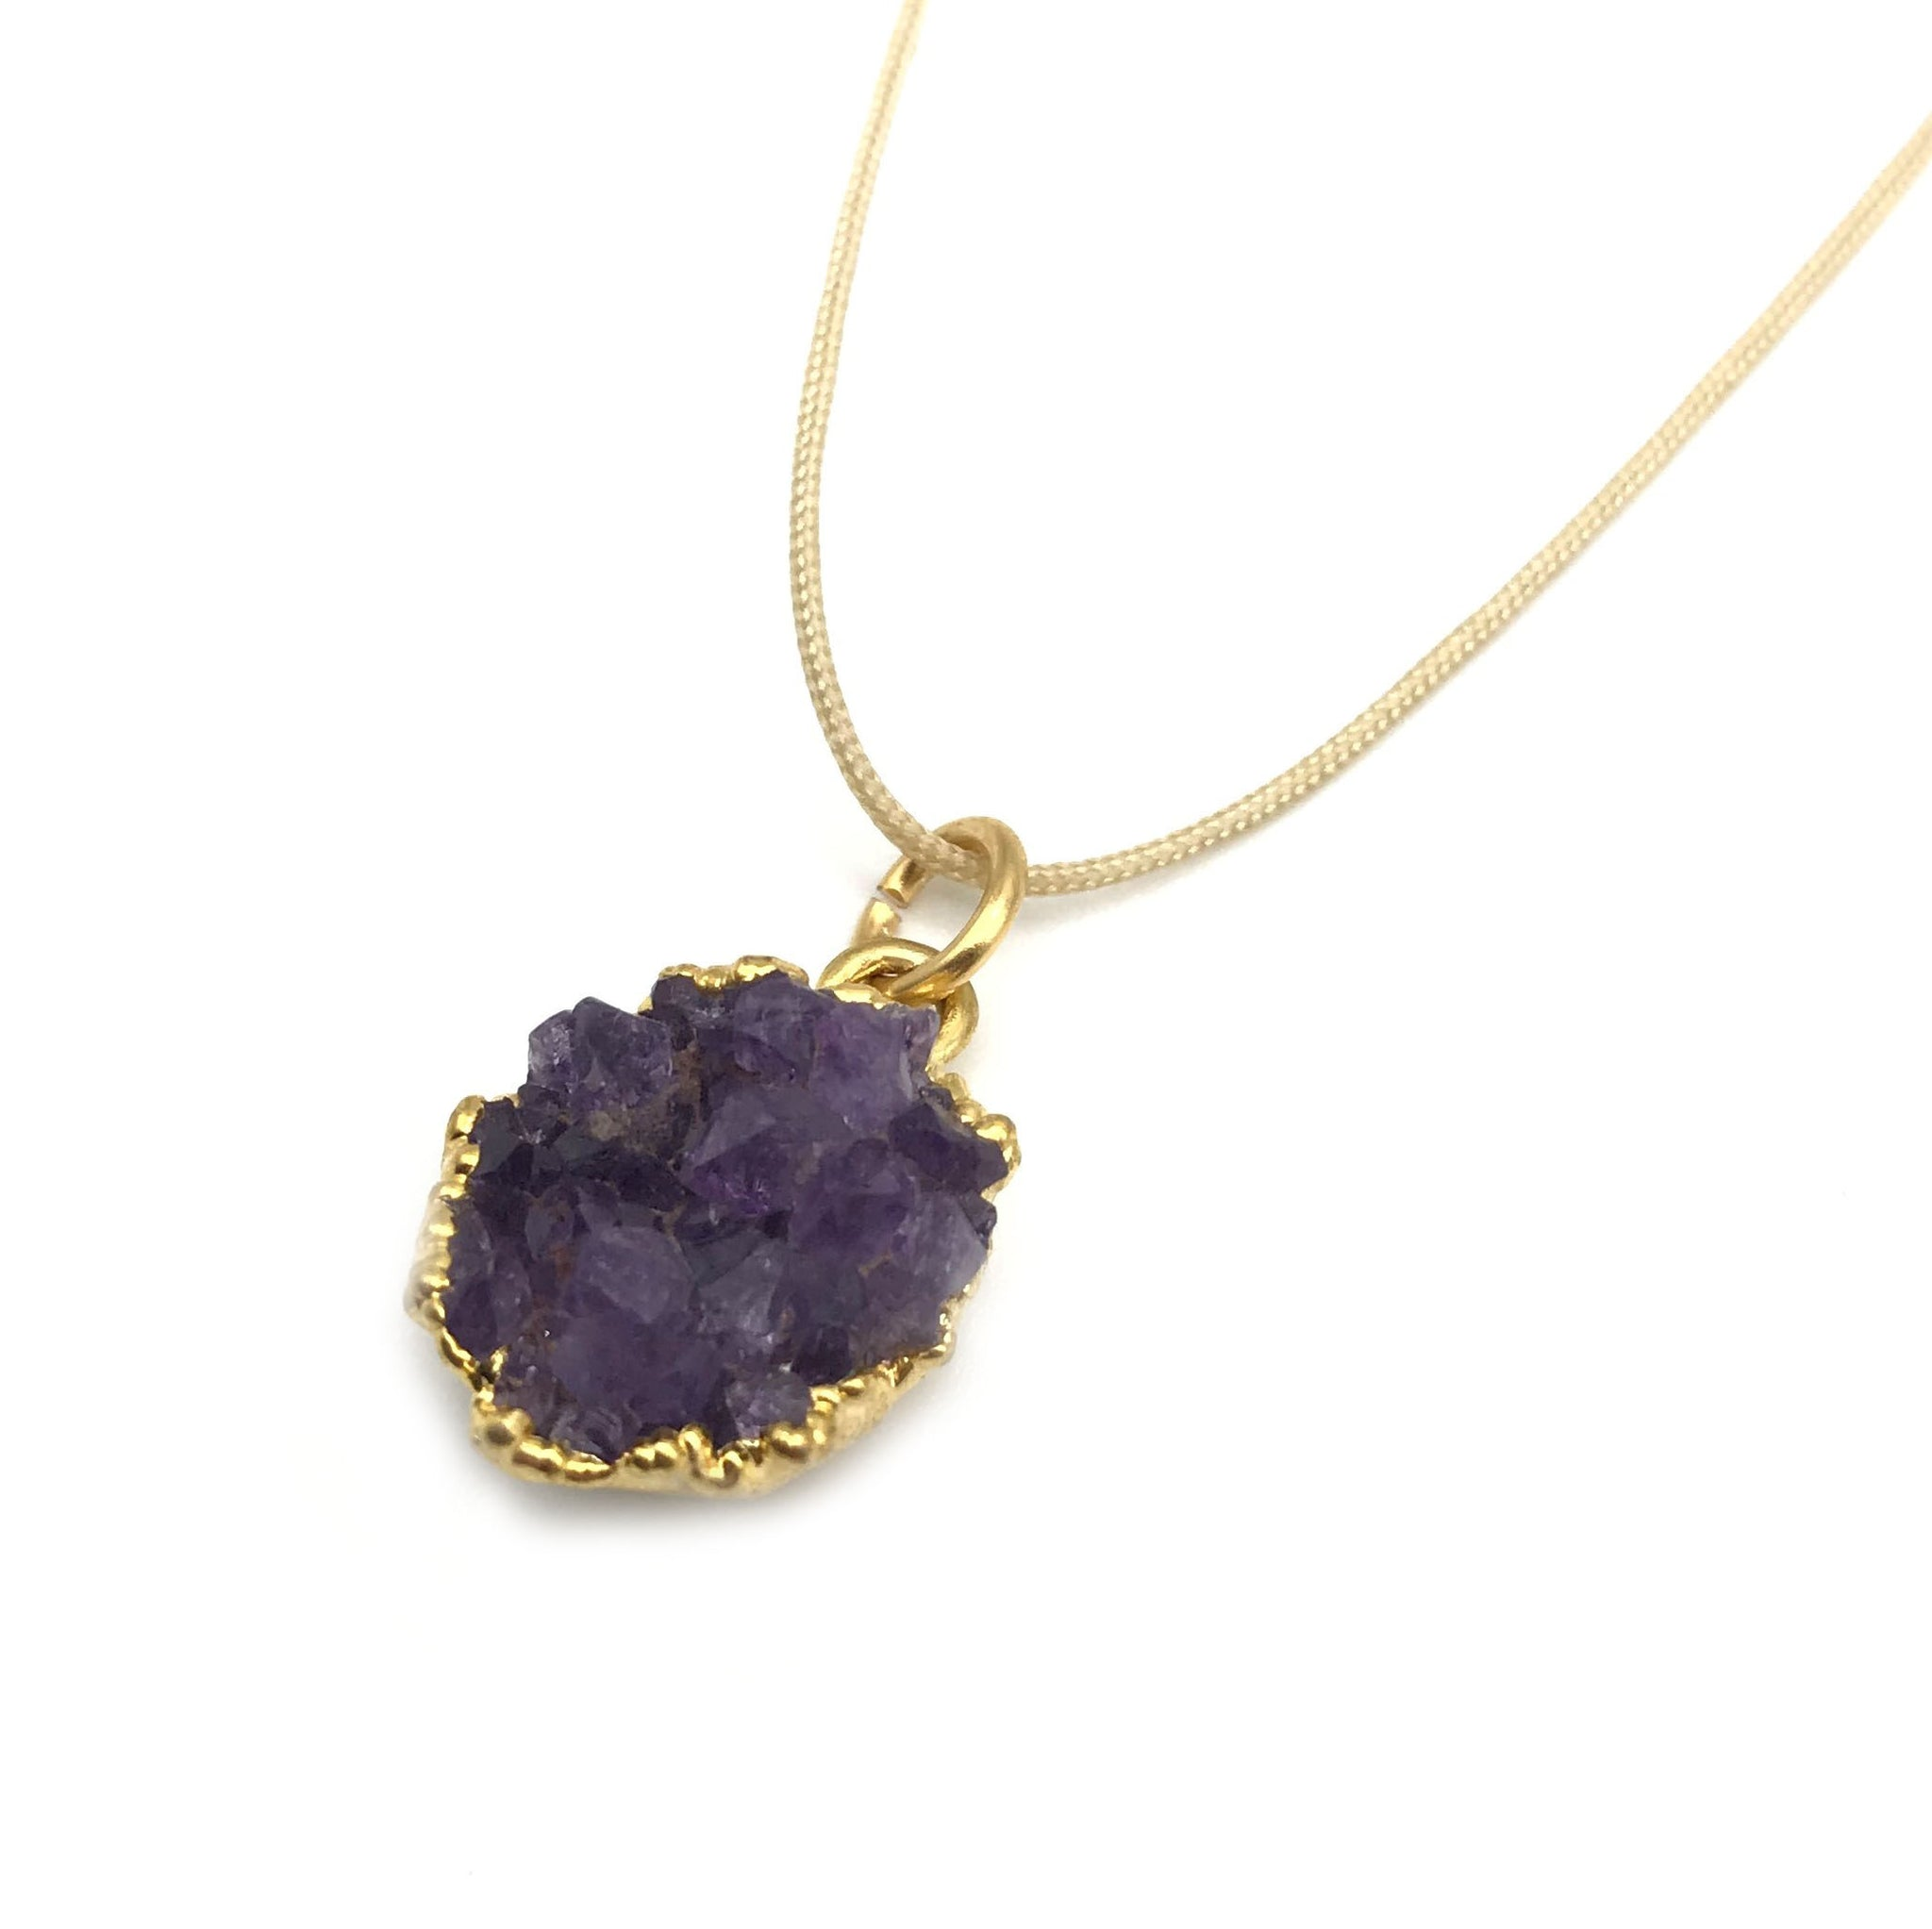 Natural Druzy Amethyst Nude Hypoallergenic Cord Necklace 16 to 28 Inches Unisex